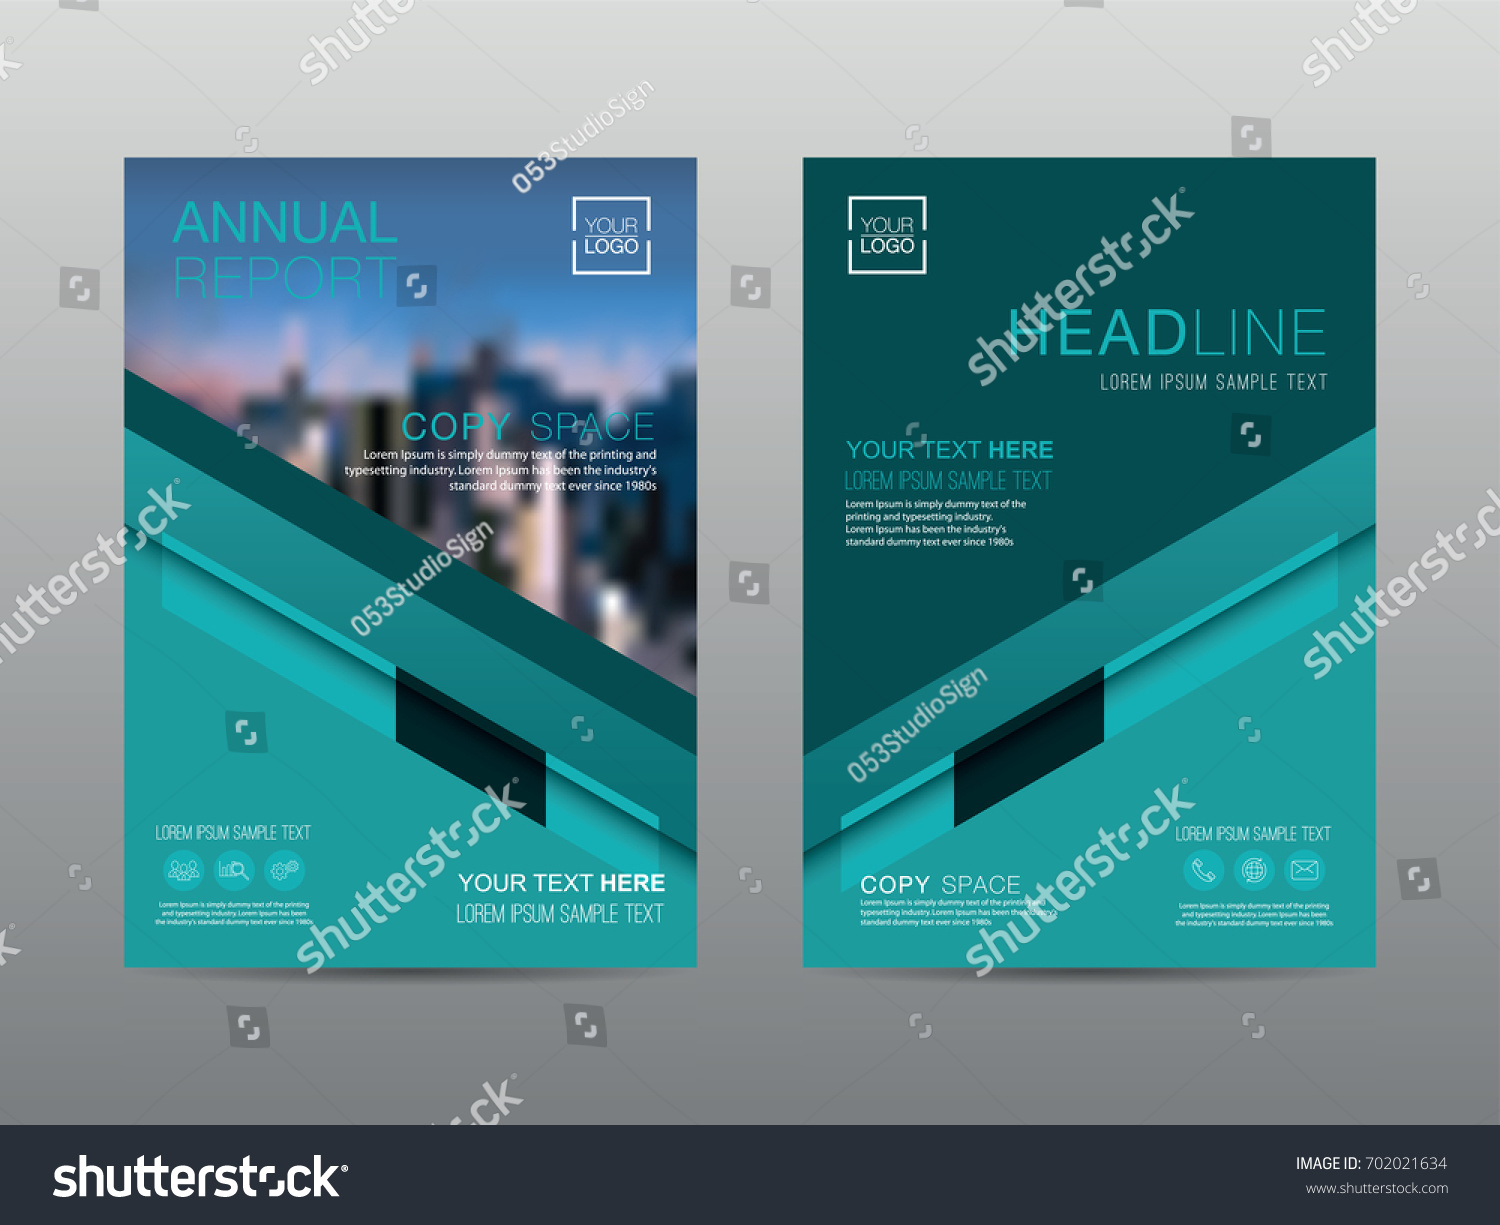 Annual Report Brochure Layout Design Template Stock Vector ...